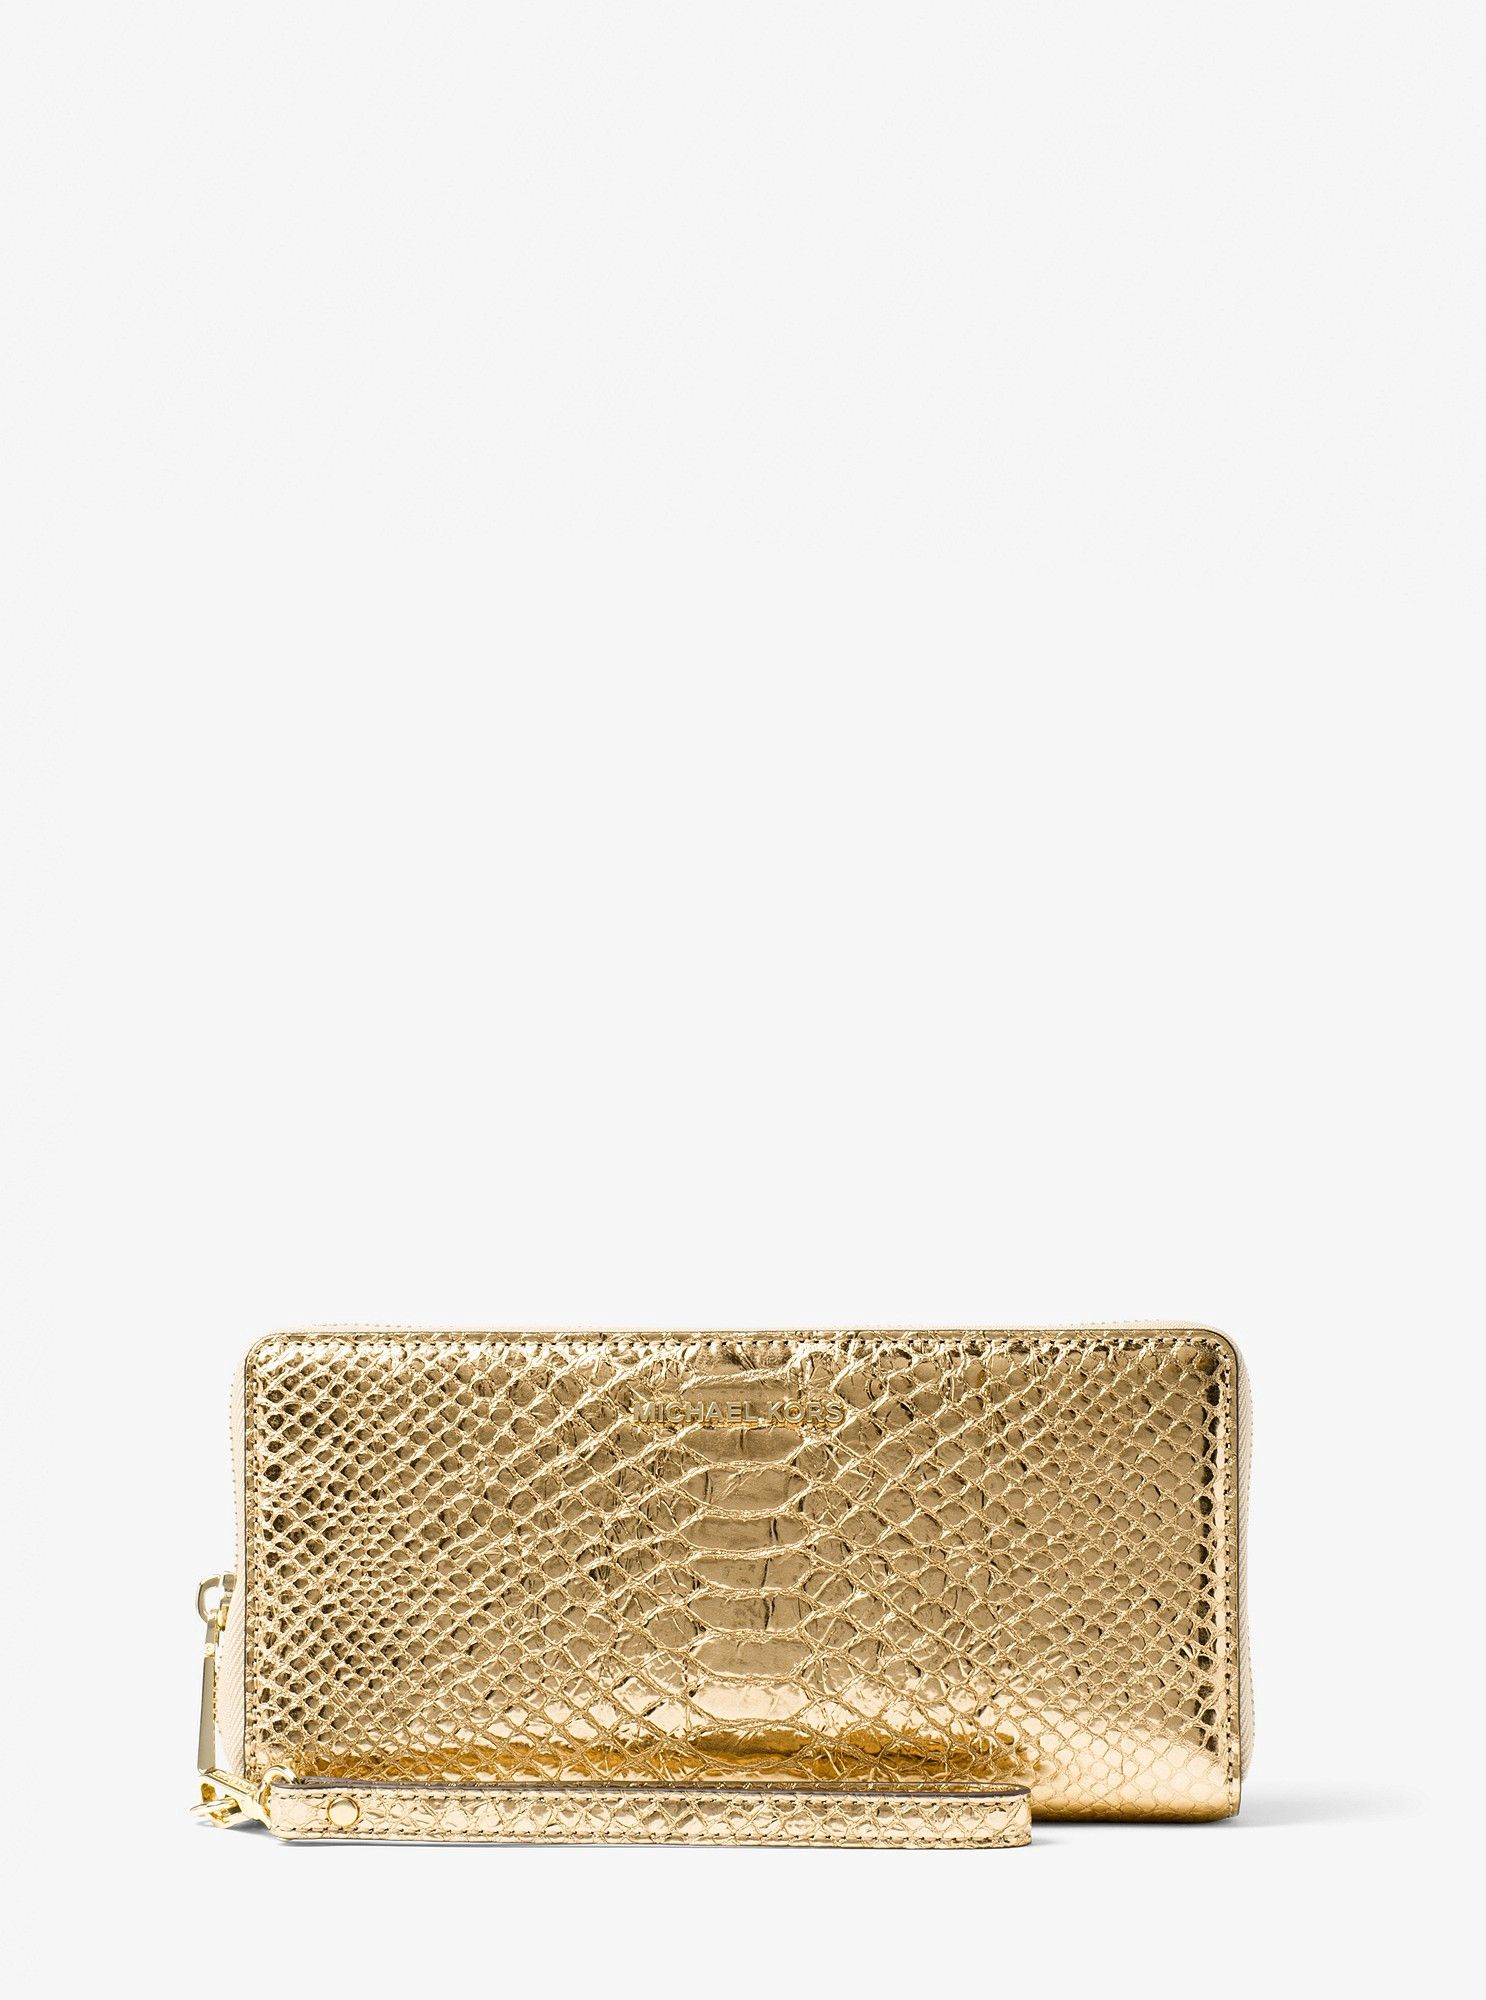 6694f5f6d2a6a4 Michael Kors Jet Set Travel Metallic Snake-Embossed-Leather Continental  Wristlet - Gold